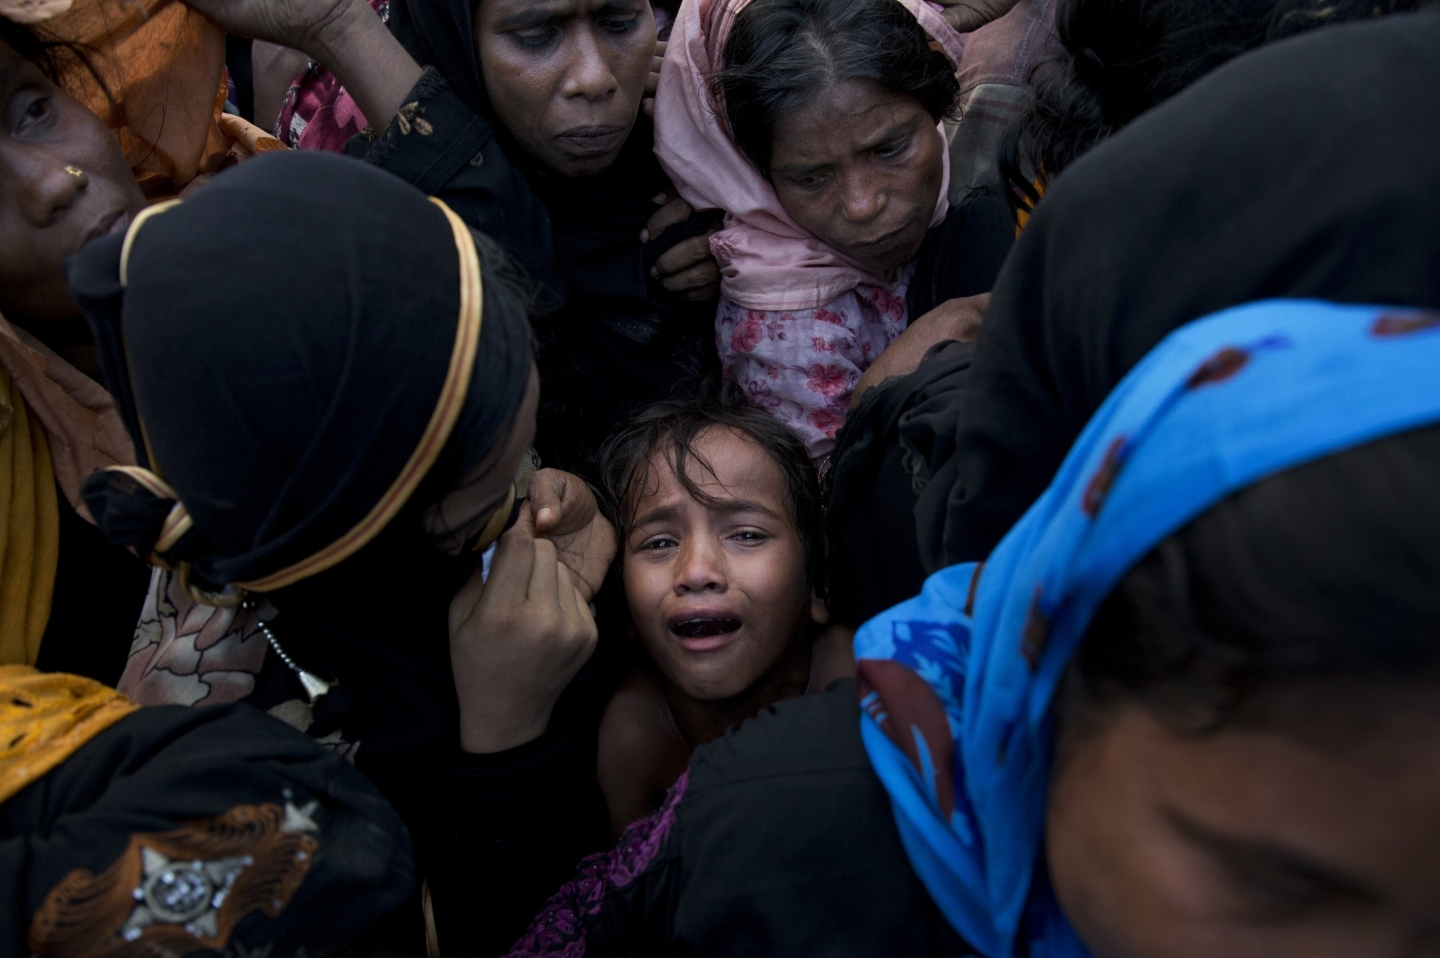 A Rohingya Muslim girl cries as she stands amid a crowd of elders in Cox's Bazar, Bangladesh (AP Photo/Bernat Armangue)